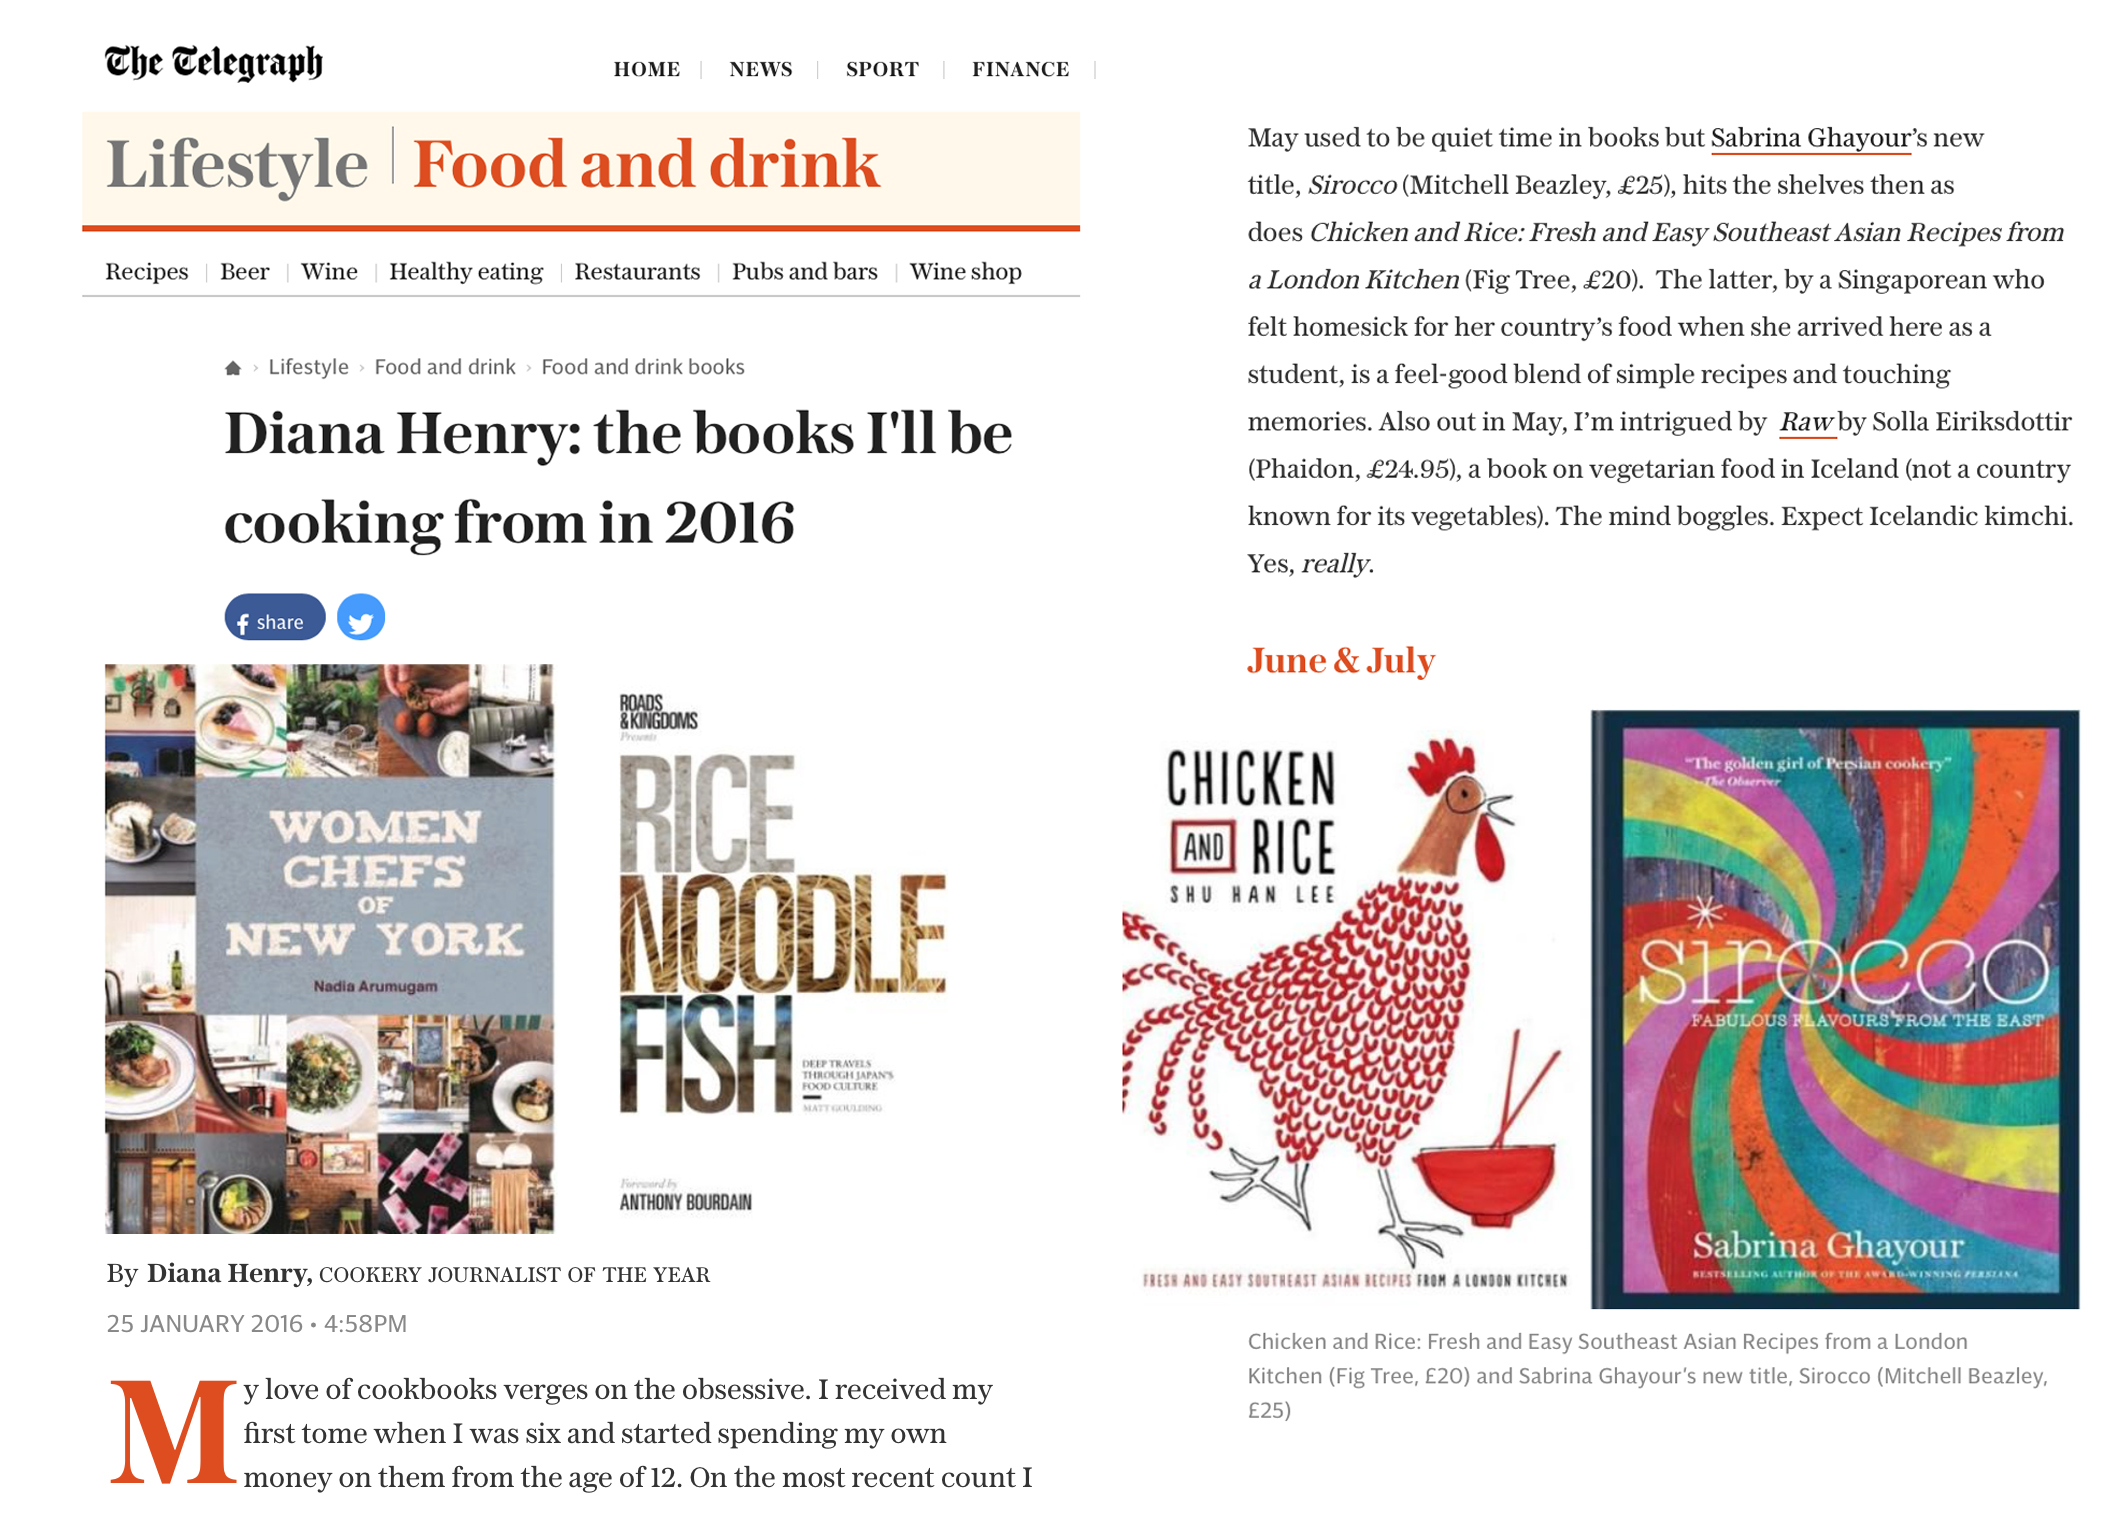 Telegraph: Cookbook feature (by Diana Henry), January 2016